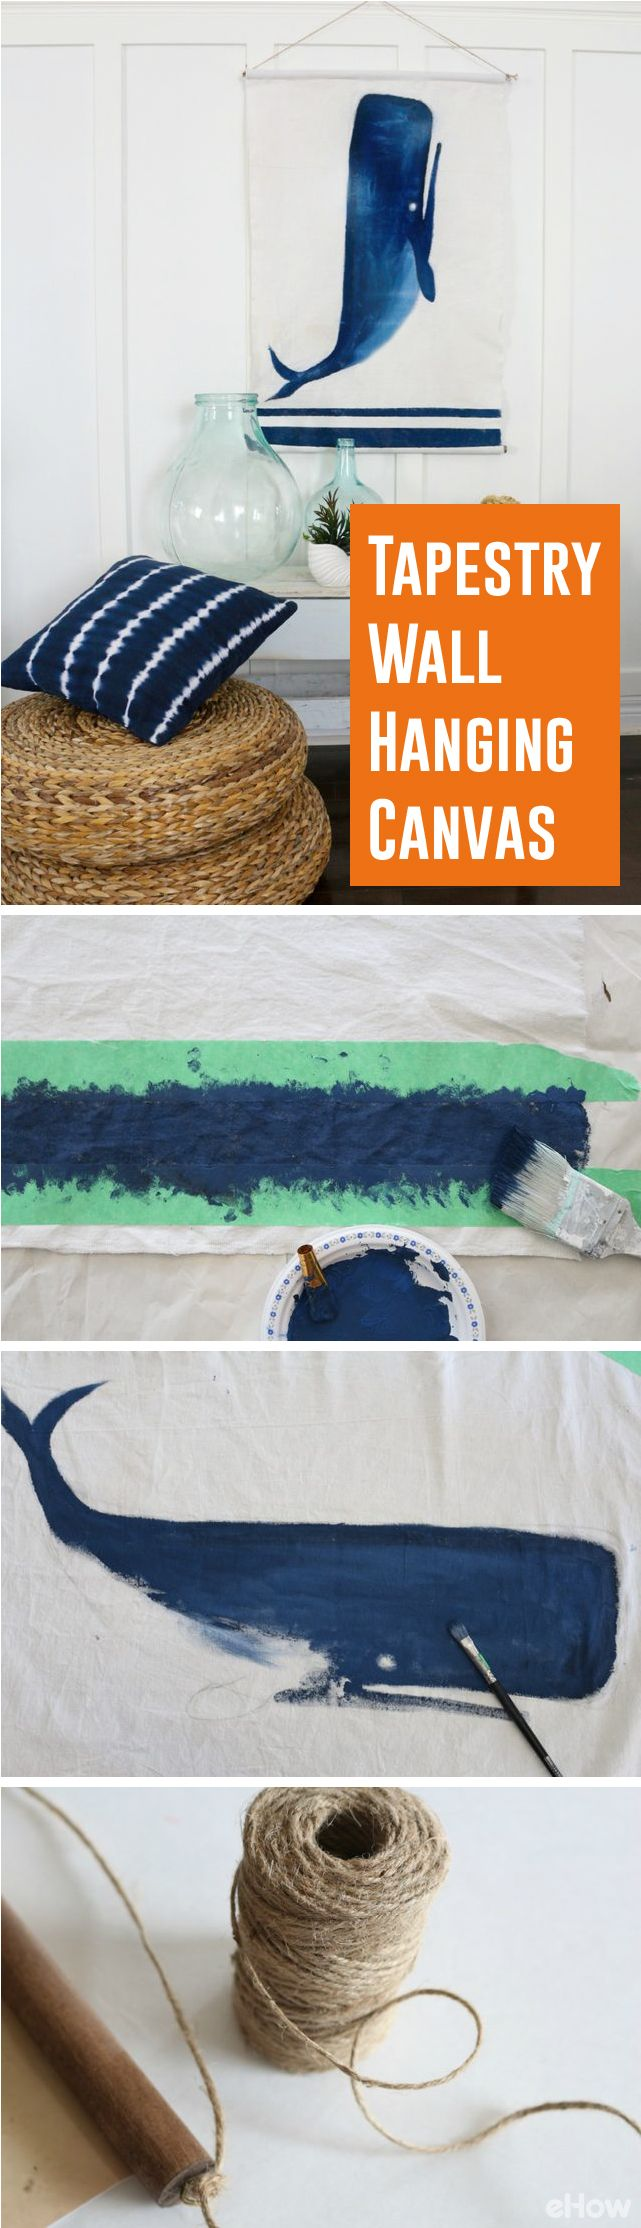 This shows you how to paint this design AND hang this canvas tapestry on your wall! This instantly spruces up an empty corner, bringing warmth and texture to your walls. This nautical-inspired design lends a beachy cottage look to any space and can be customized according to color preference. DIY wall hanging tapestry directions here: http://www.ehow.com/how_10054929_make-tapestry-wall-hanging-canvas.html?utm_source=pinterest.com&utm_medium=referral&utm_content=freestyle&utm_campaign=fanpage